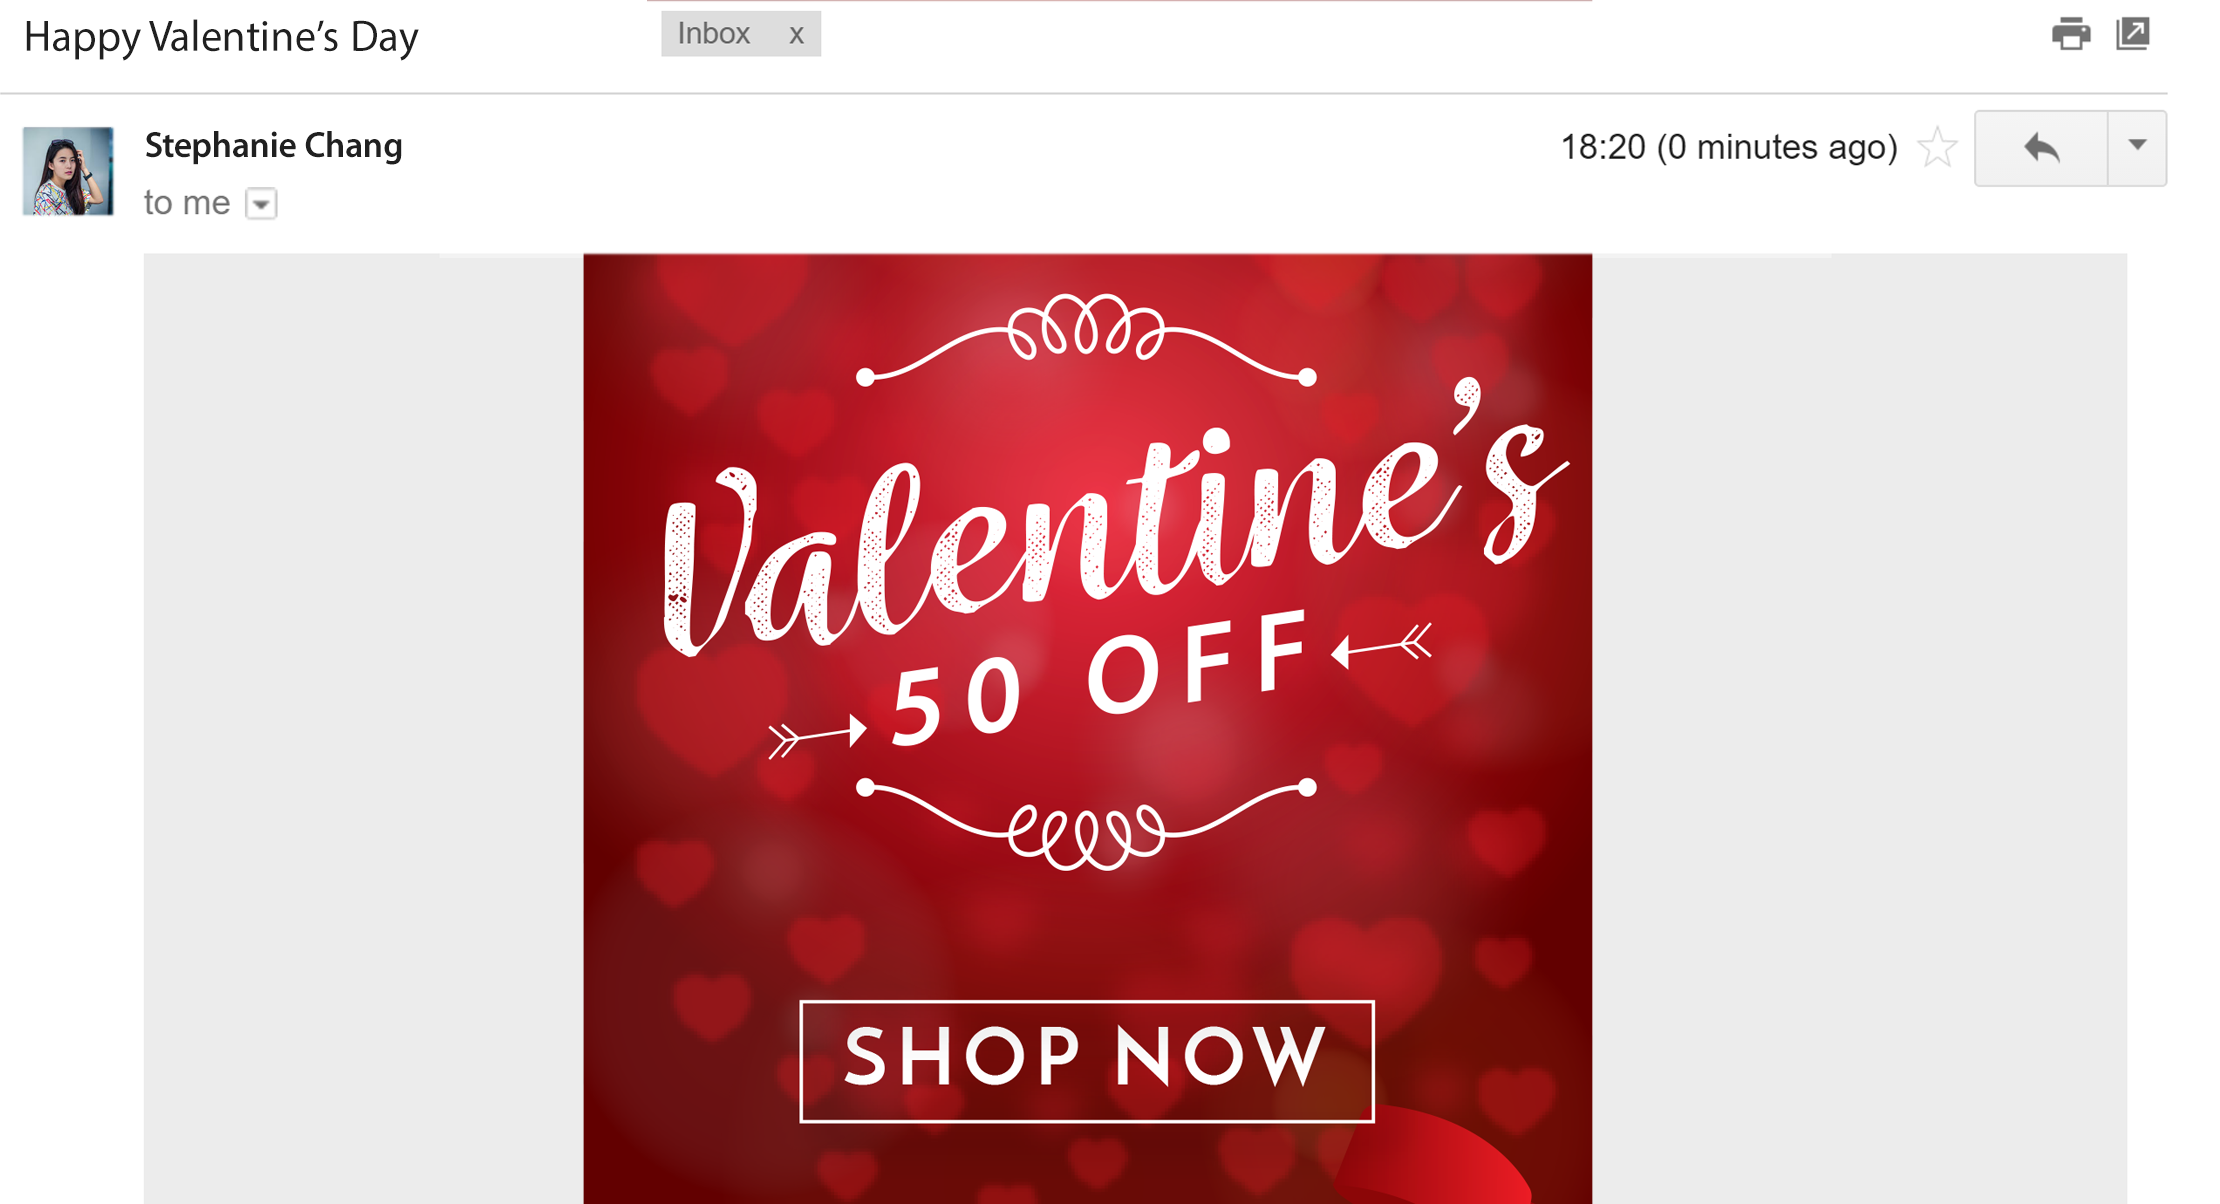 Valentine's Day email